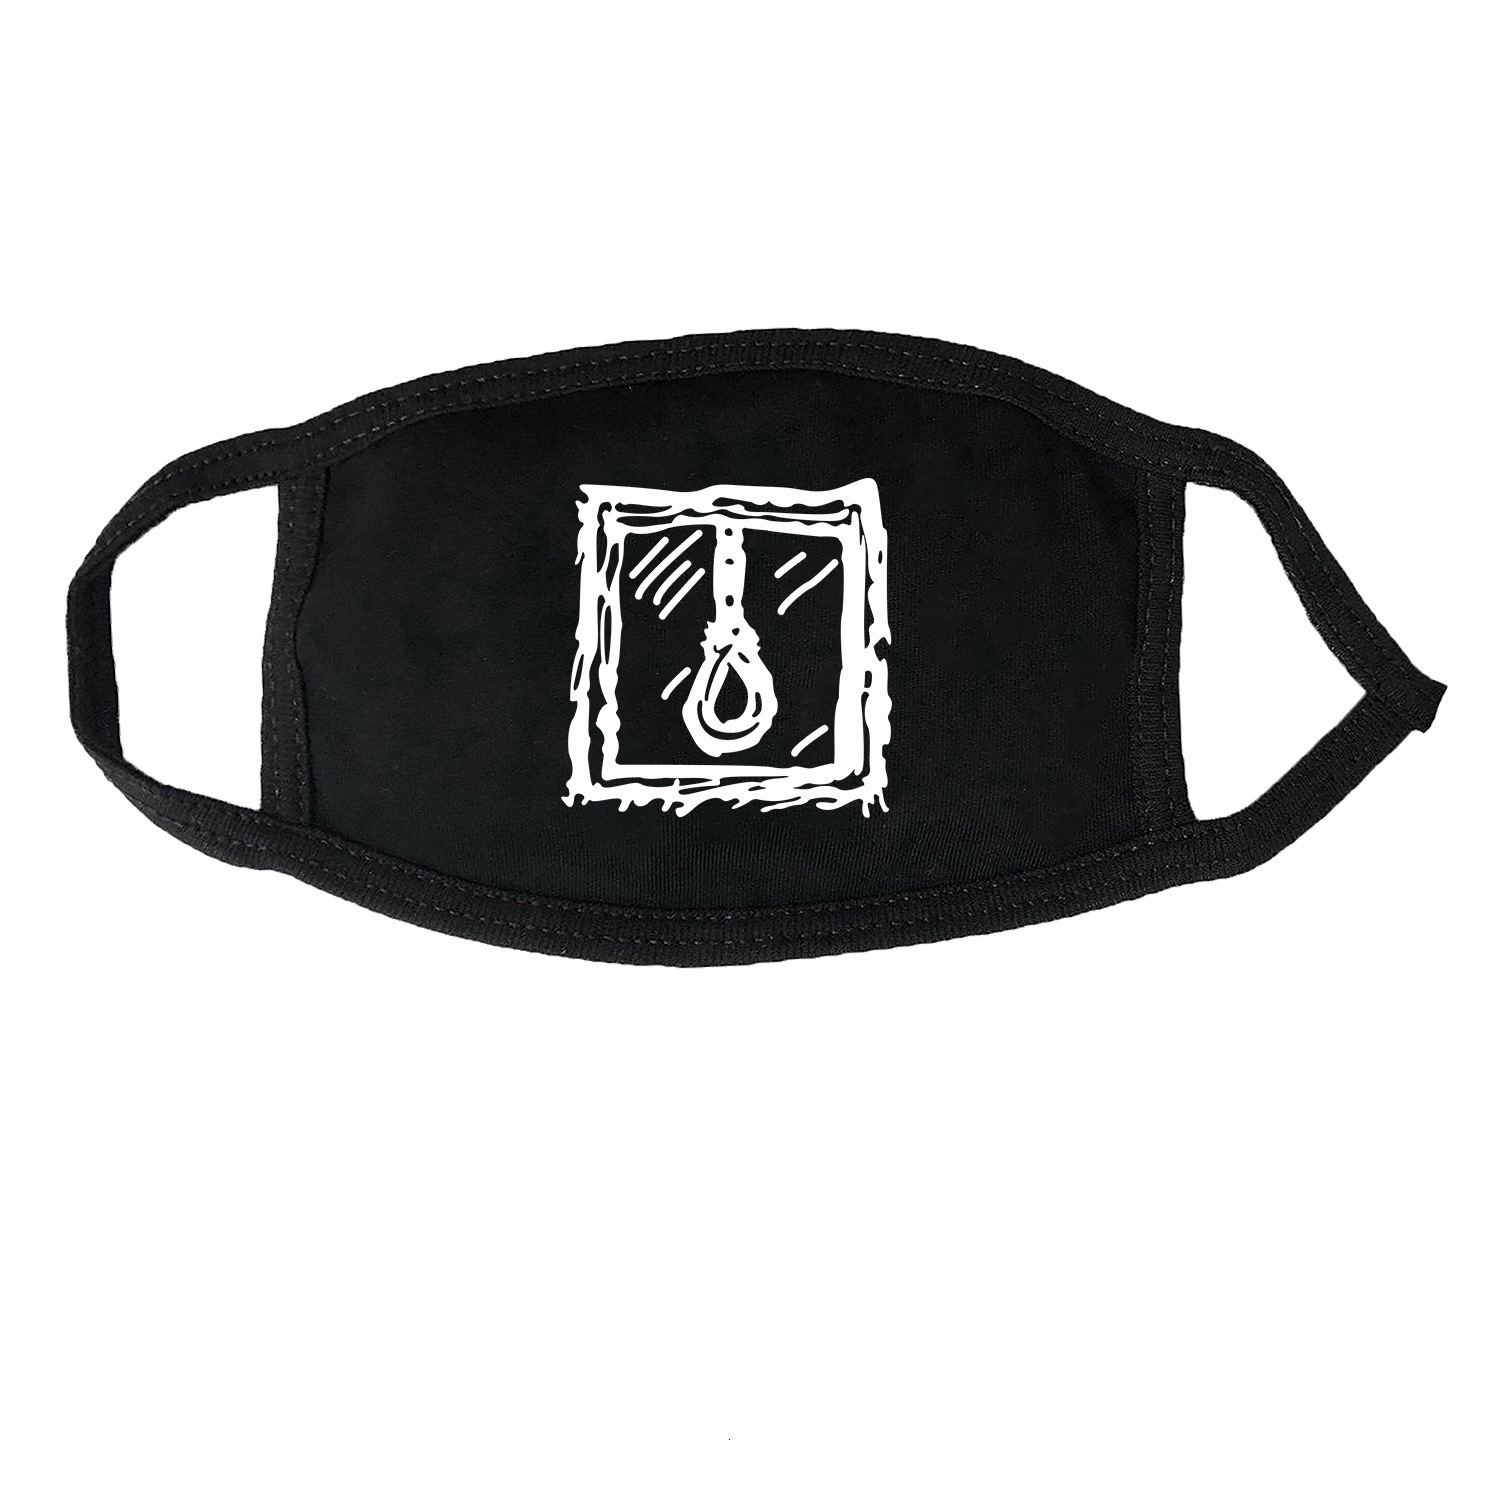 Image 2 - Lil Peep Periphery Mask Men And Women Fund Dustproof Defence  Exhaust Mask Can Clean Sex Cloth MaskWomens Masks